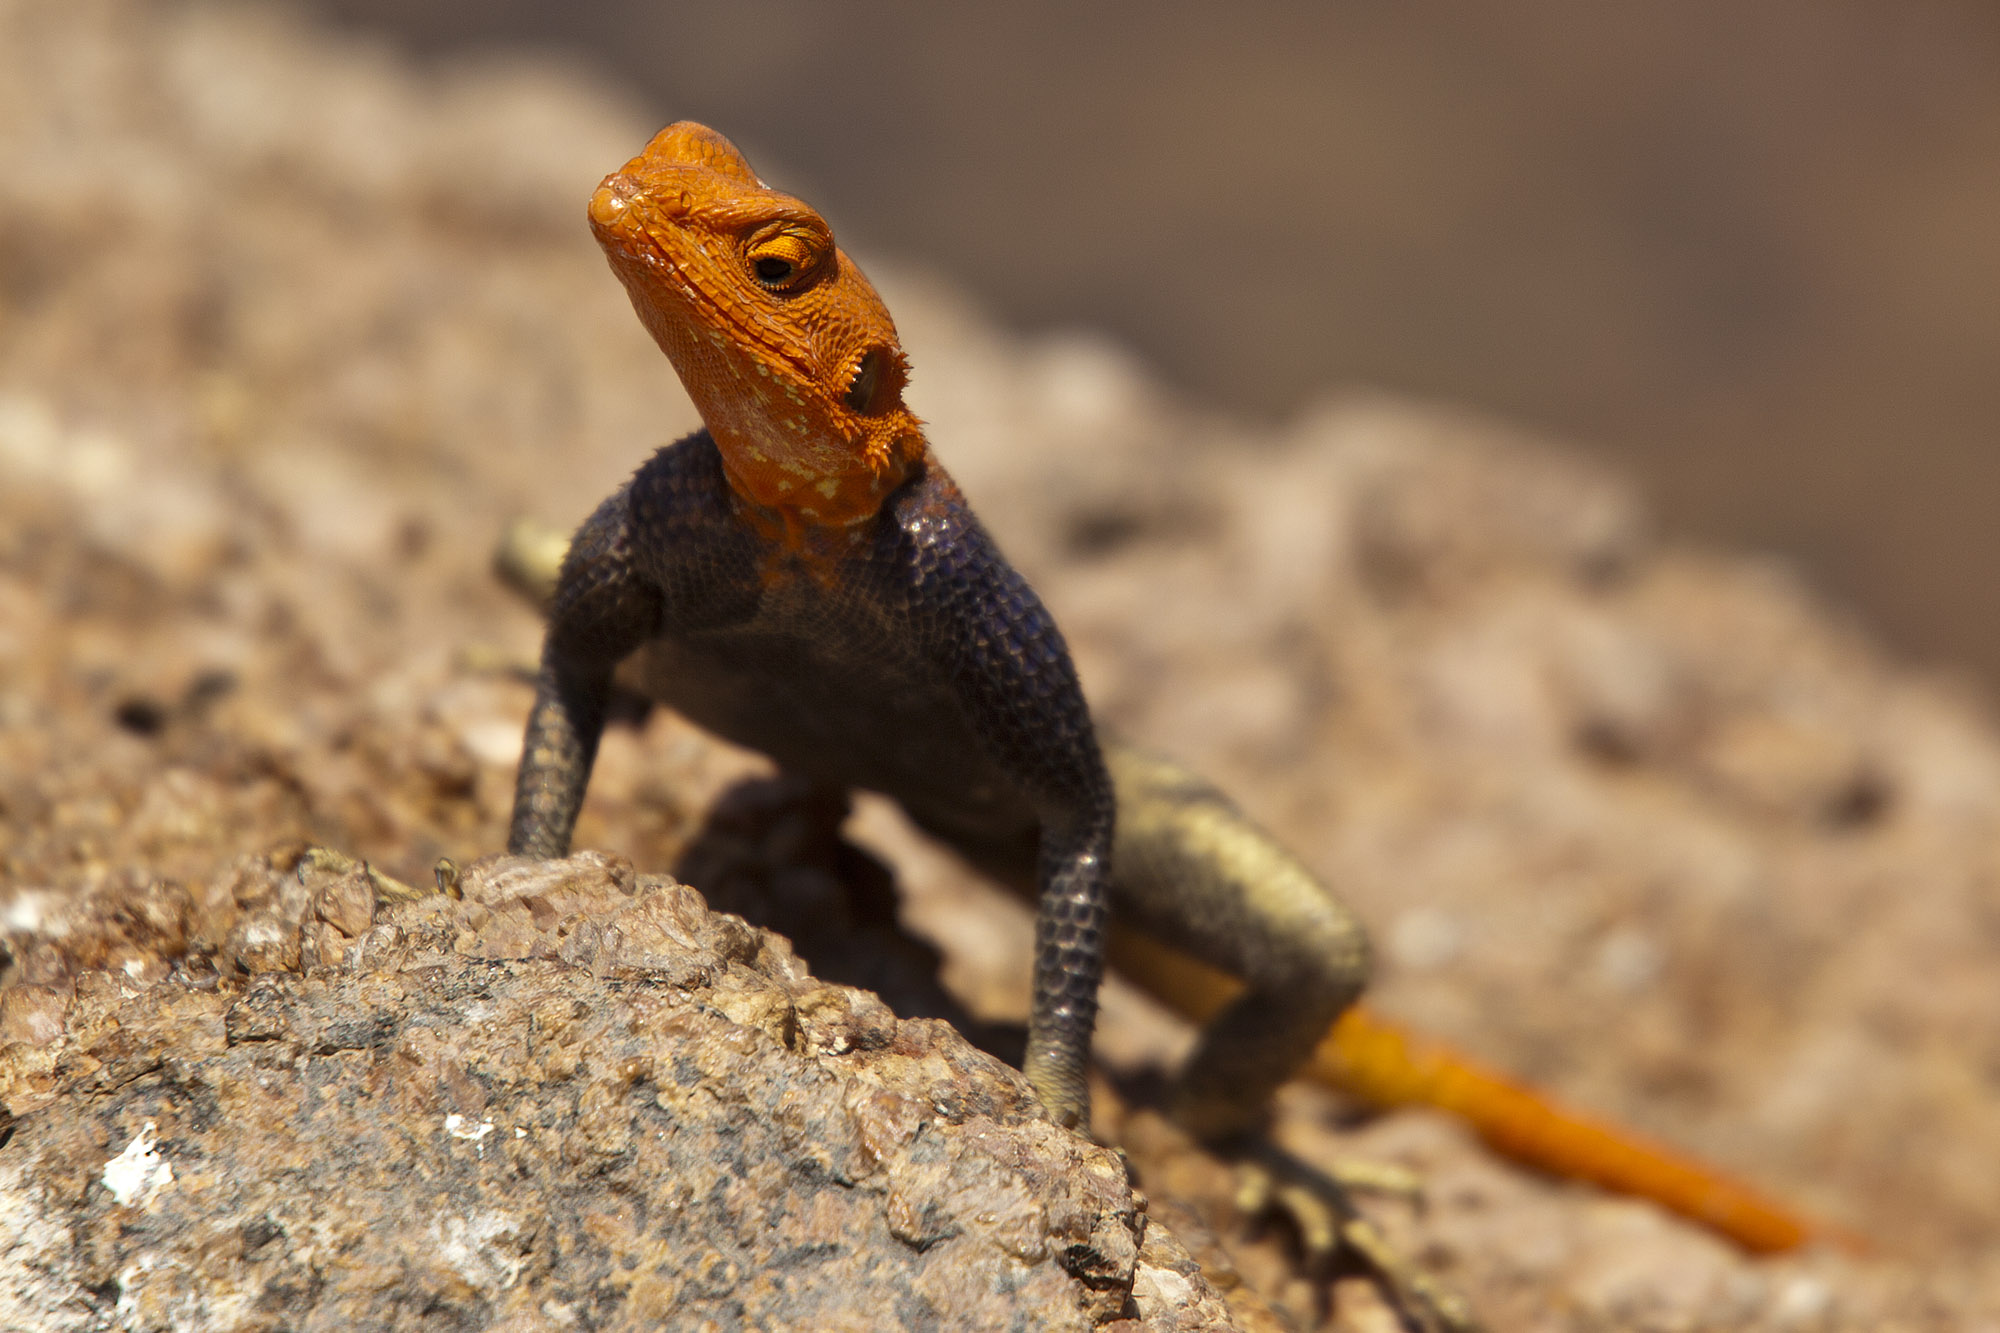 Male Red-headed Rock Agama